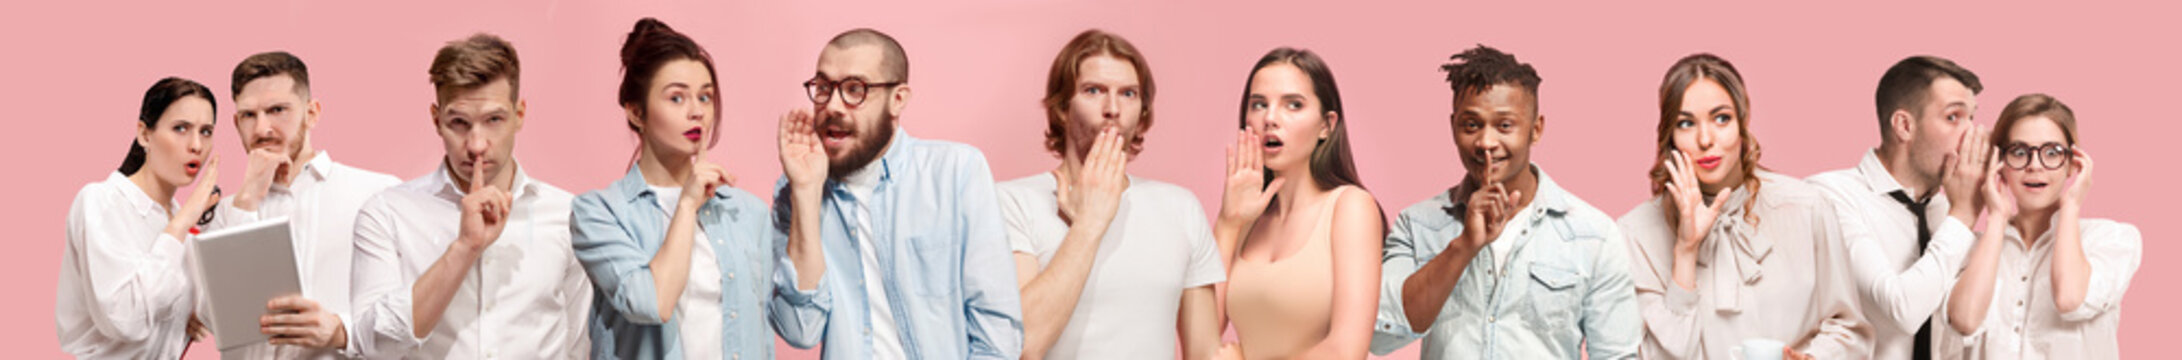 Secret, gossip concept. Young men and women whispering a secret behind hands. Business people on trendy pink studio background. Human emotions, facial expression concept. Creative collage of 9 models.